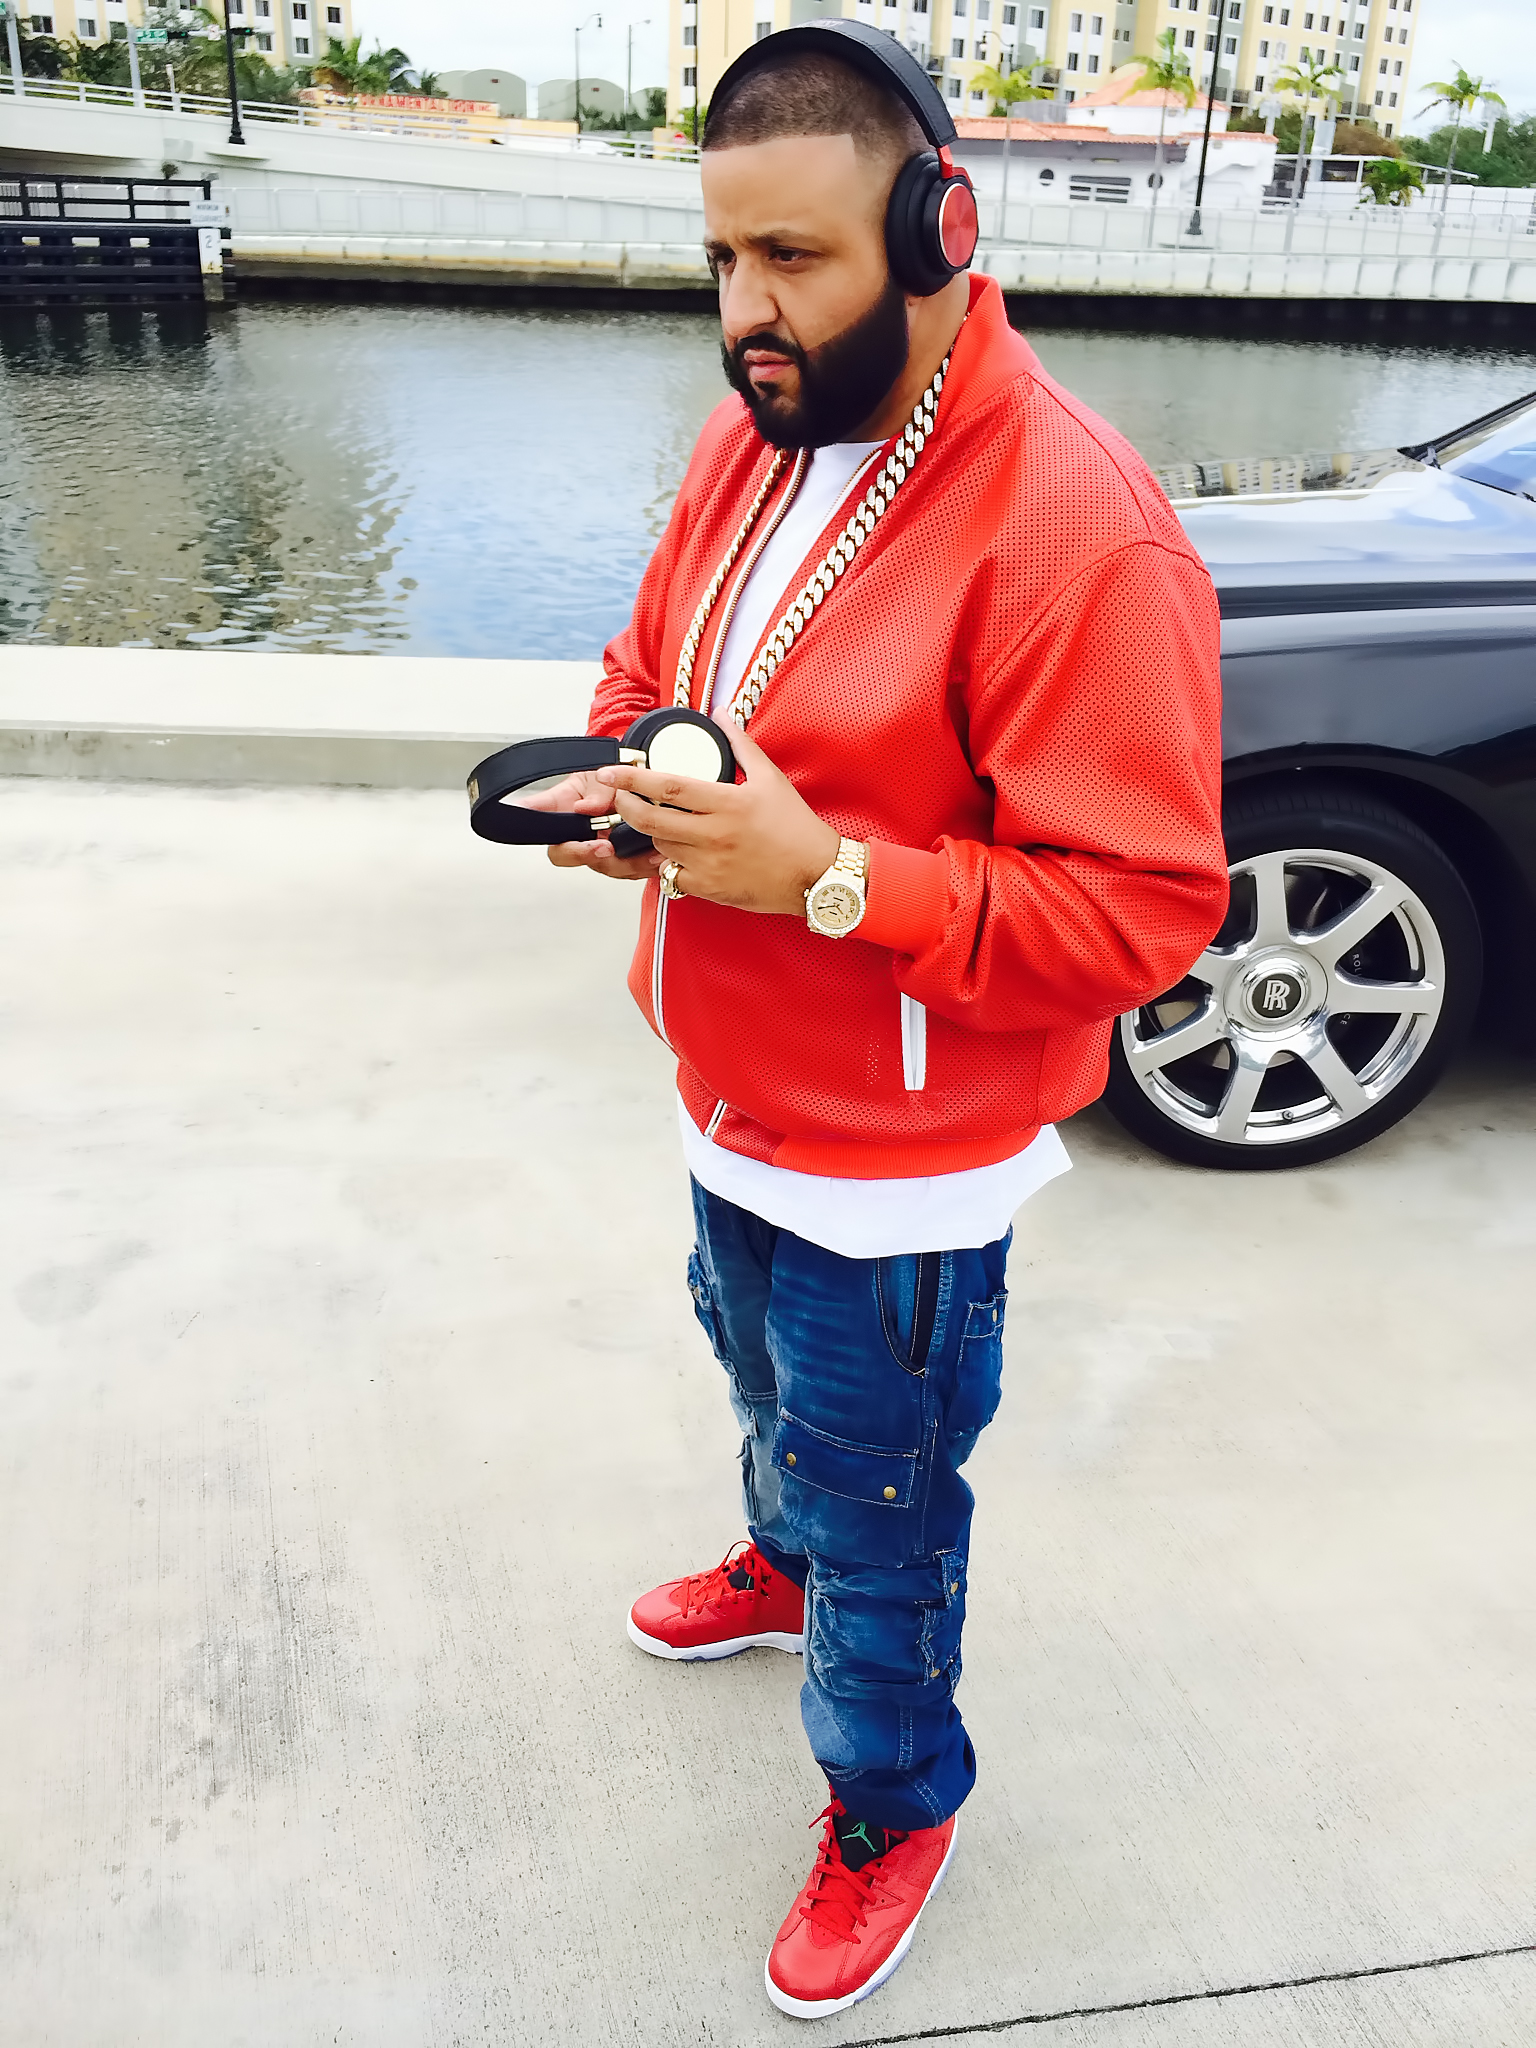 DJ Khaled said he's a gifted shooter on the basketball court. / FYIPR